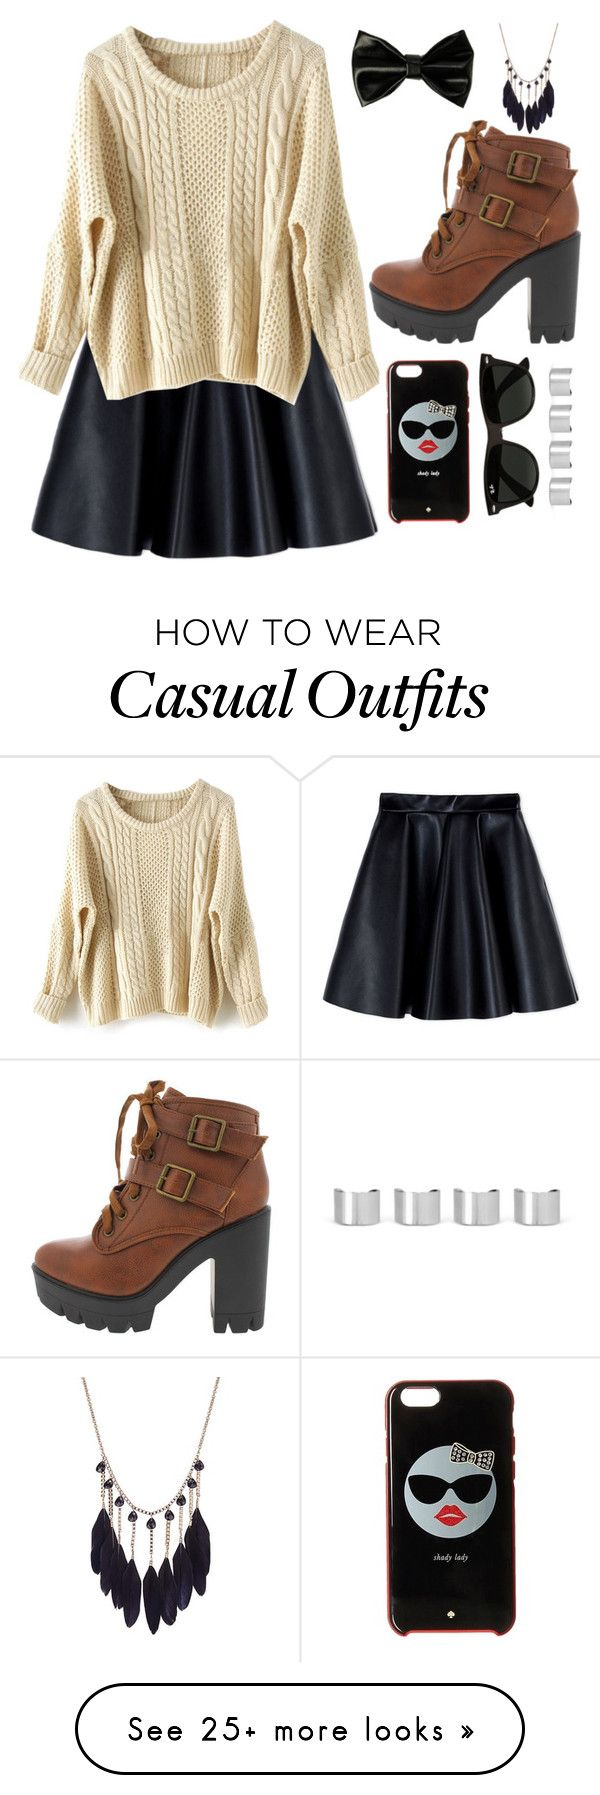 """Casual"" by chap15906248 on Polyvore featuring MSGM, Kate Spade, Ray-Ban and Maison Margiela"